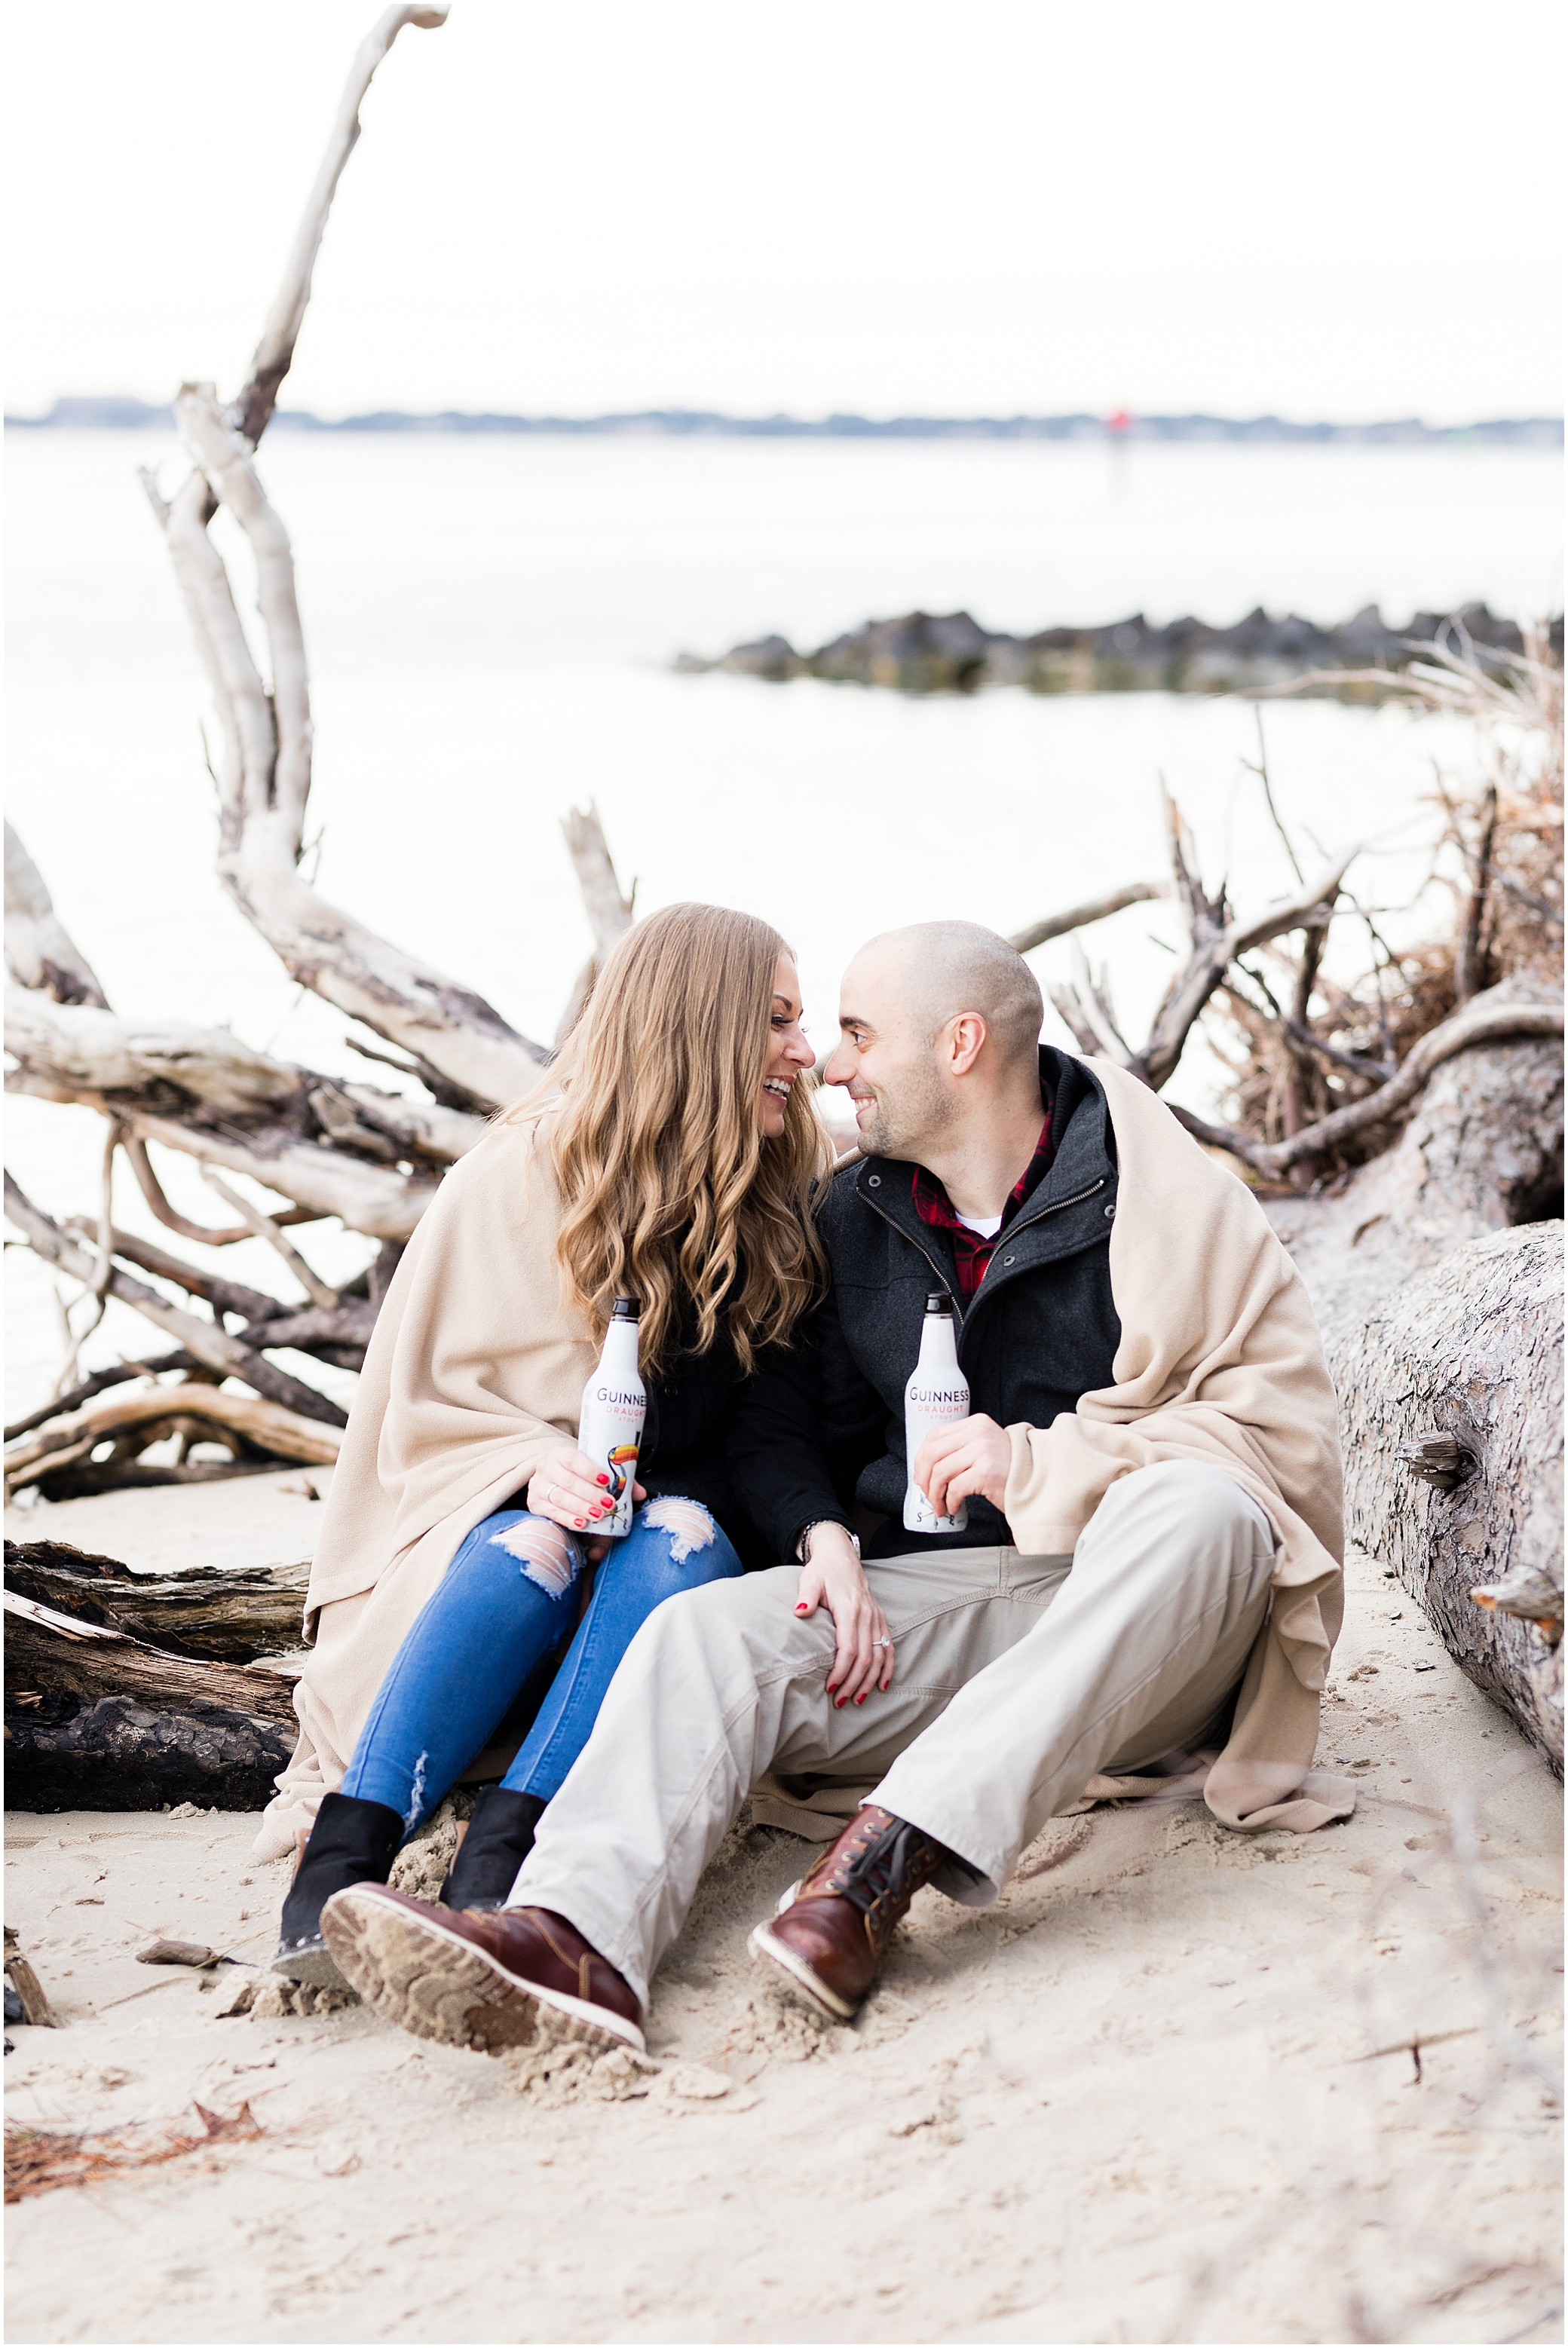 Virginia state park engagement, first landing state park engagement photography, couple on the beach with driftwood